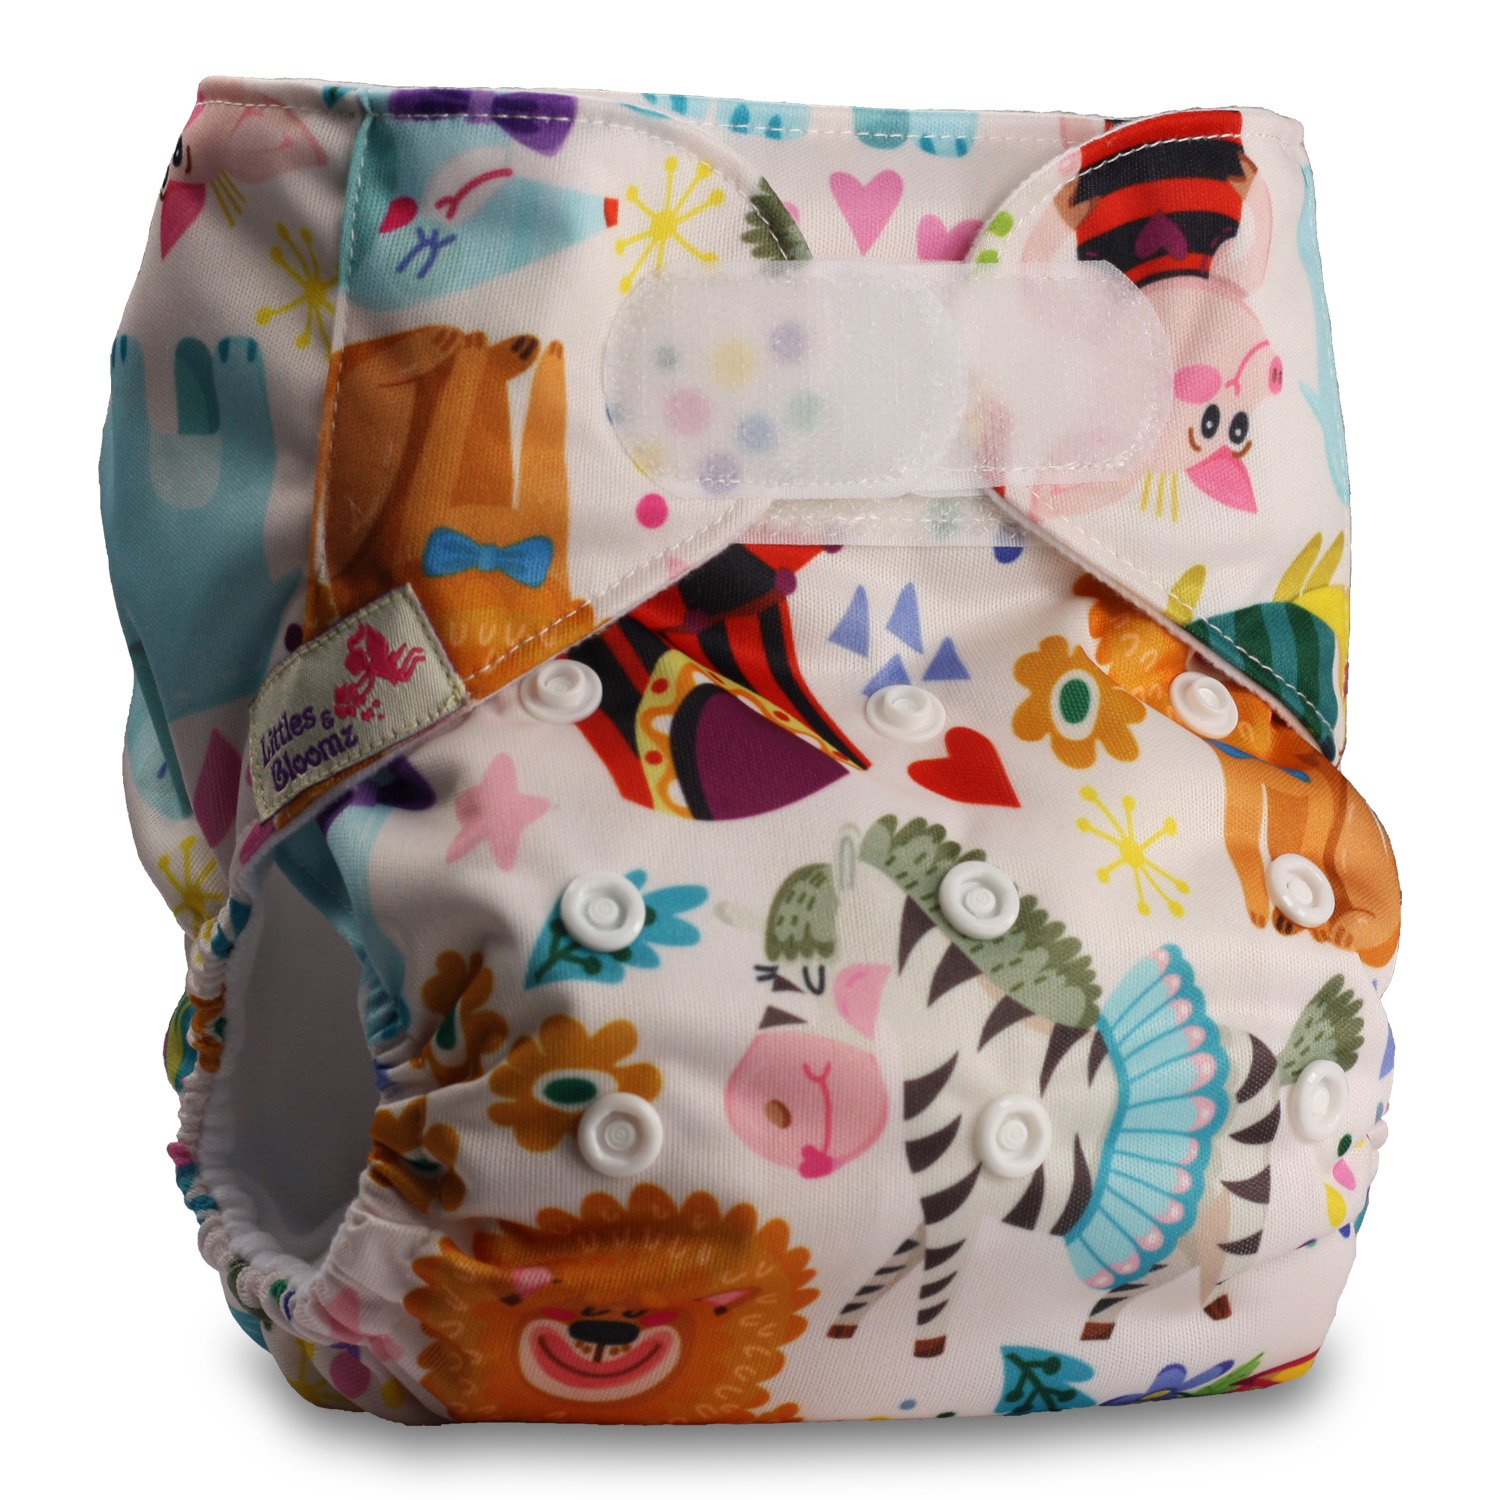 with 1 Microfibre Insert Baby Cloth Washable Reusable Nappy Pocket Diaper Bamboo Fastener: Hook-Loop Littles /& Bloomz Pattern 45